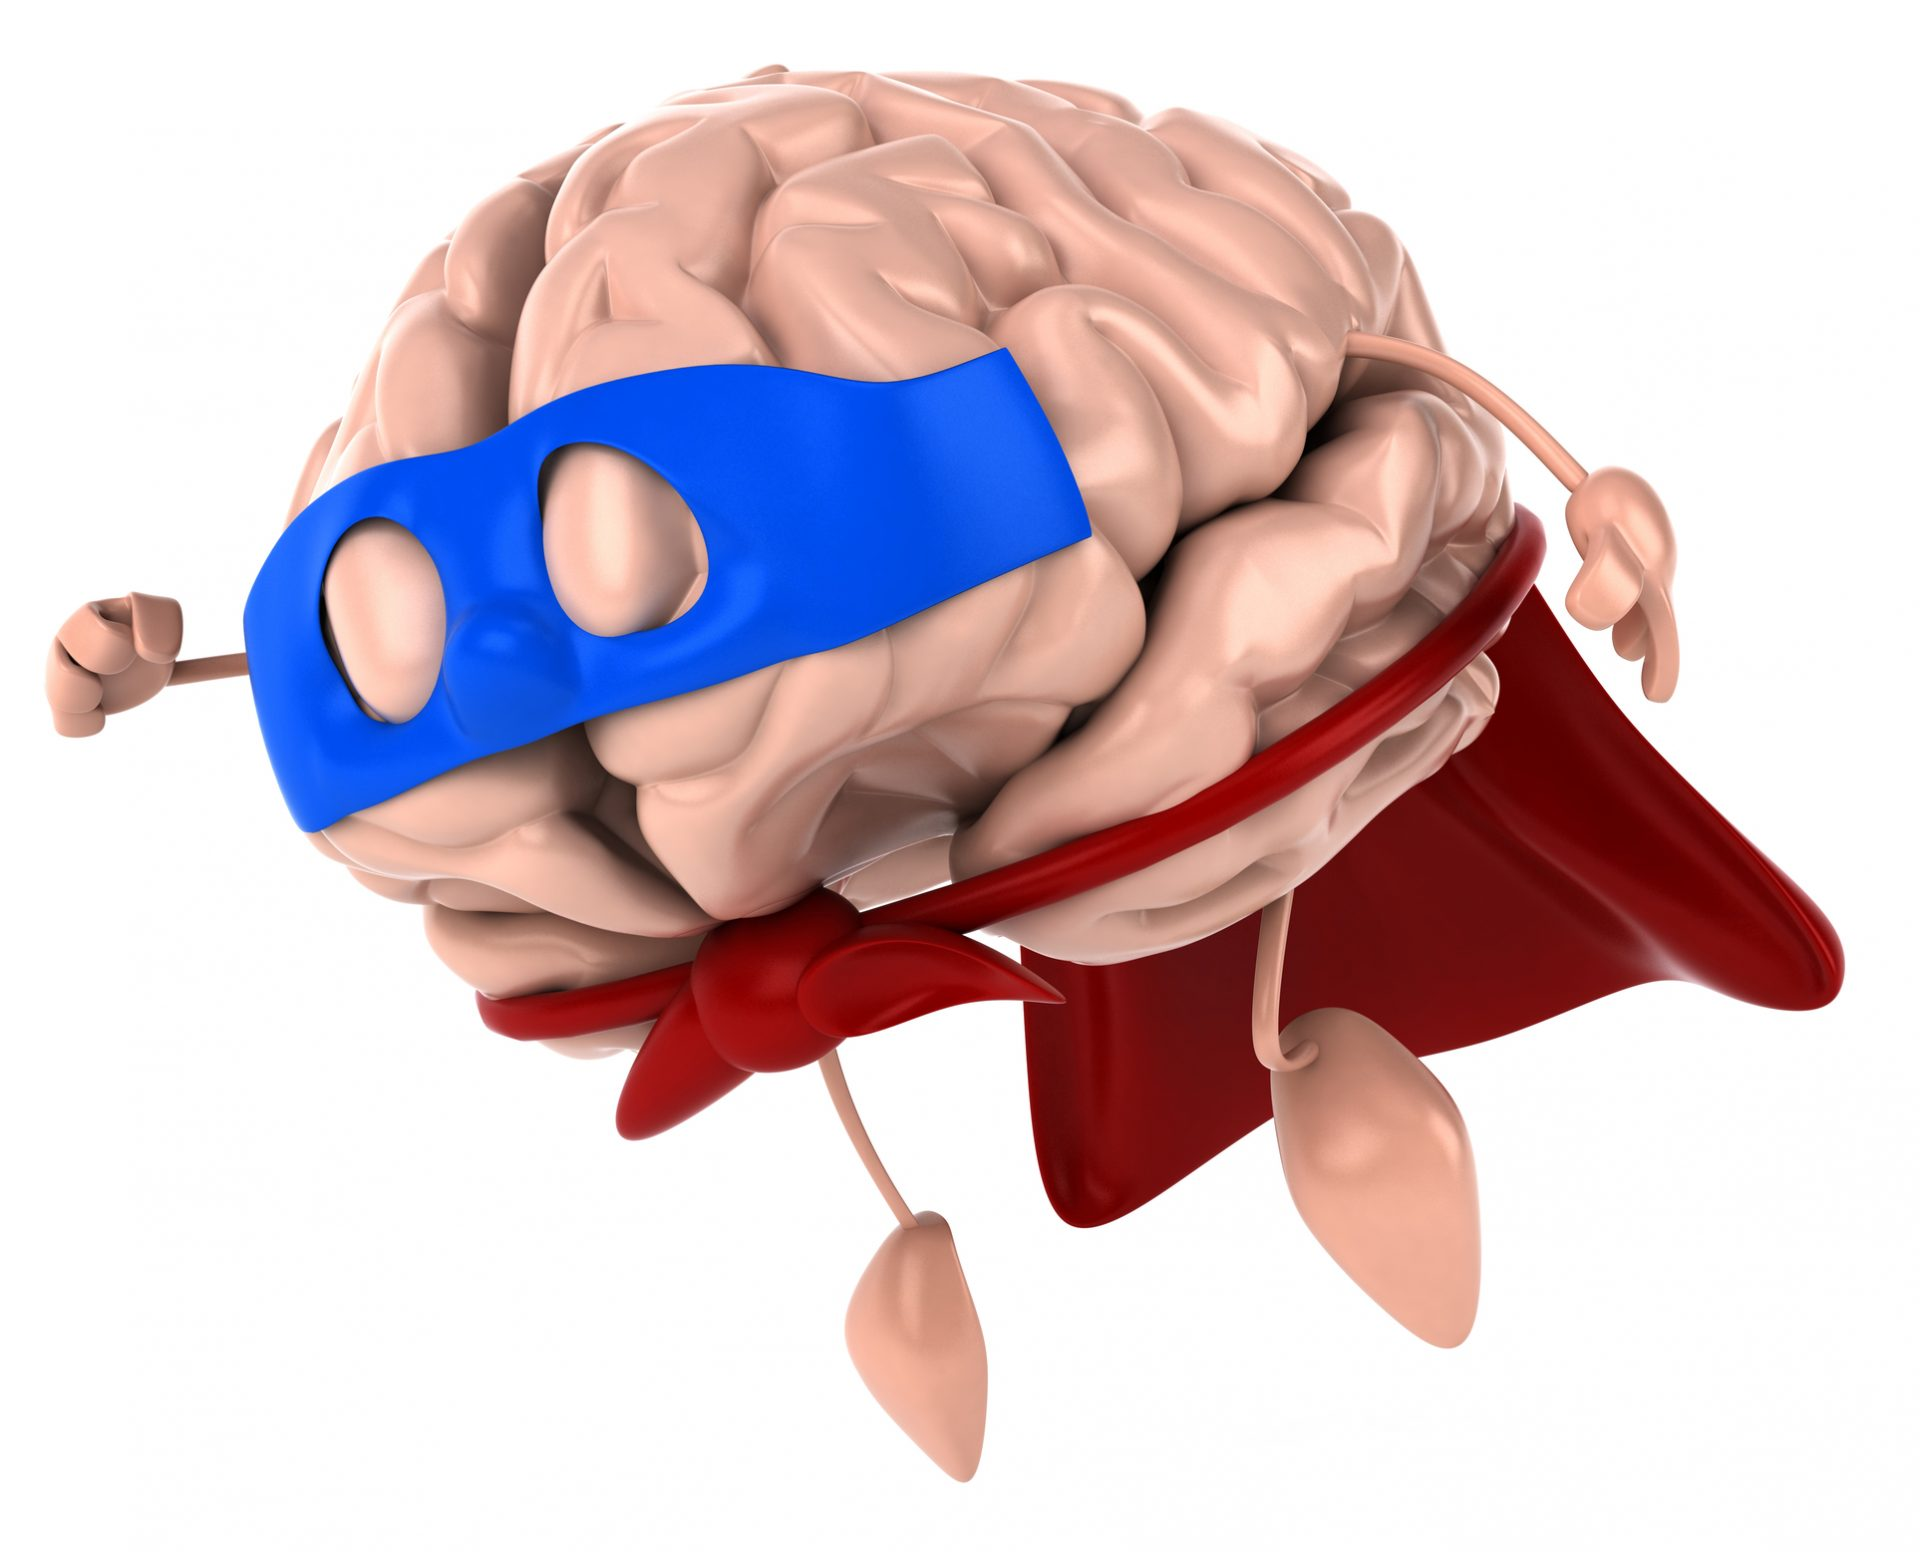 Superhero brain